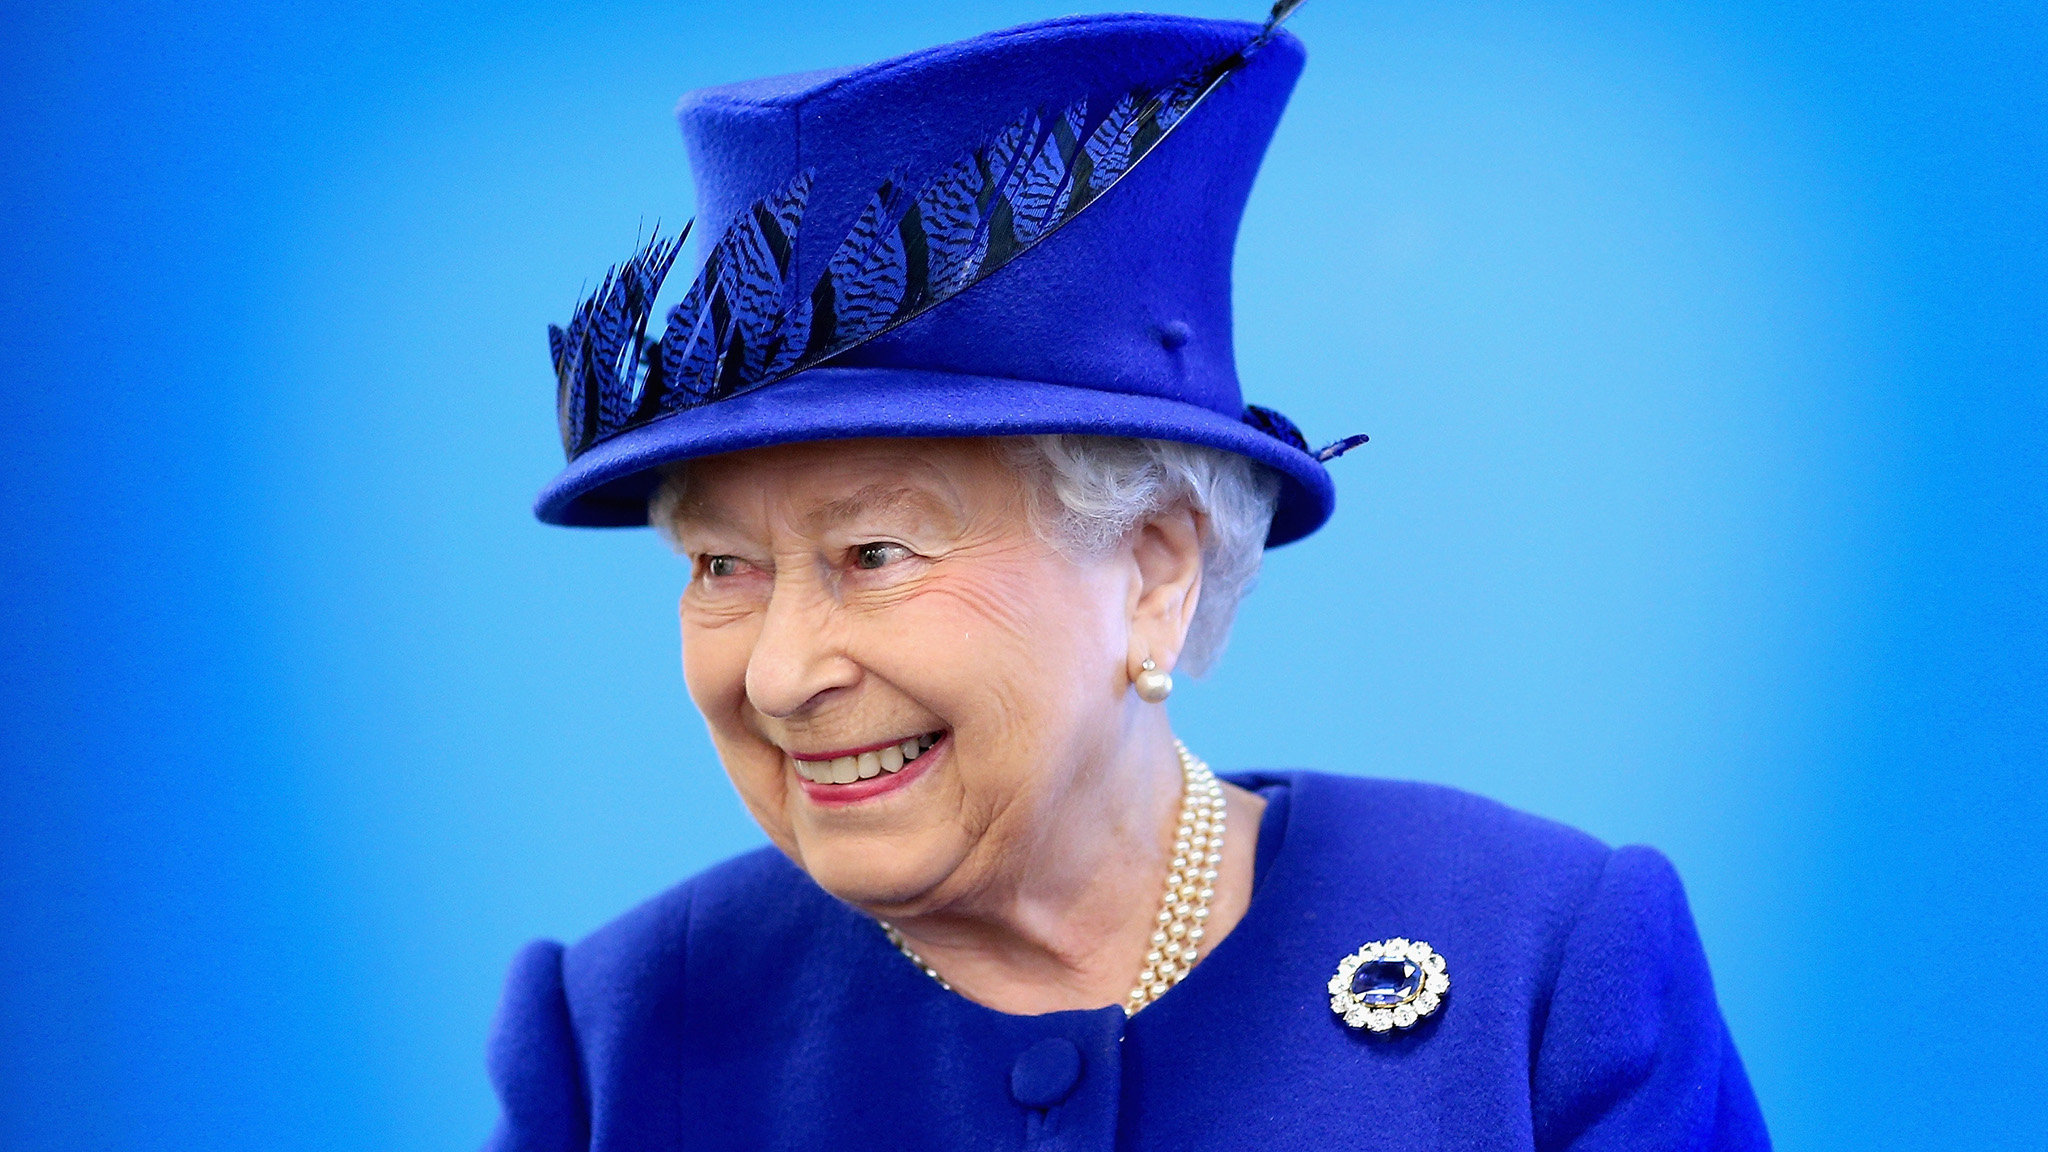 A hundred years of Windsors but still the Queen is partly